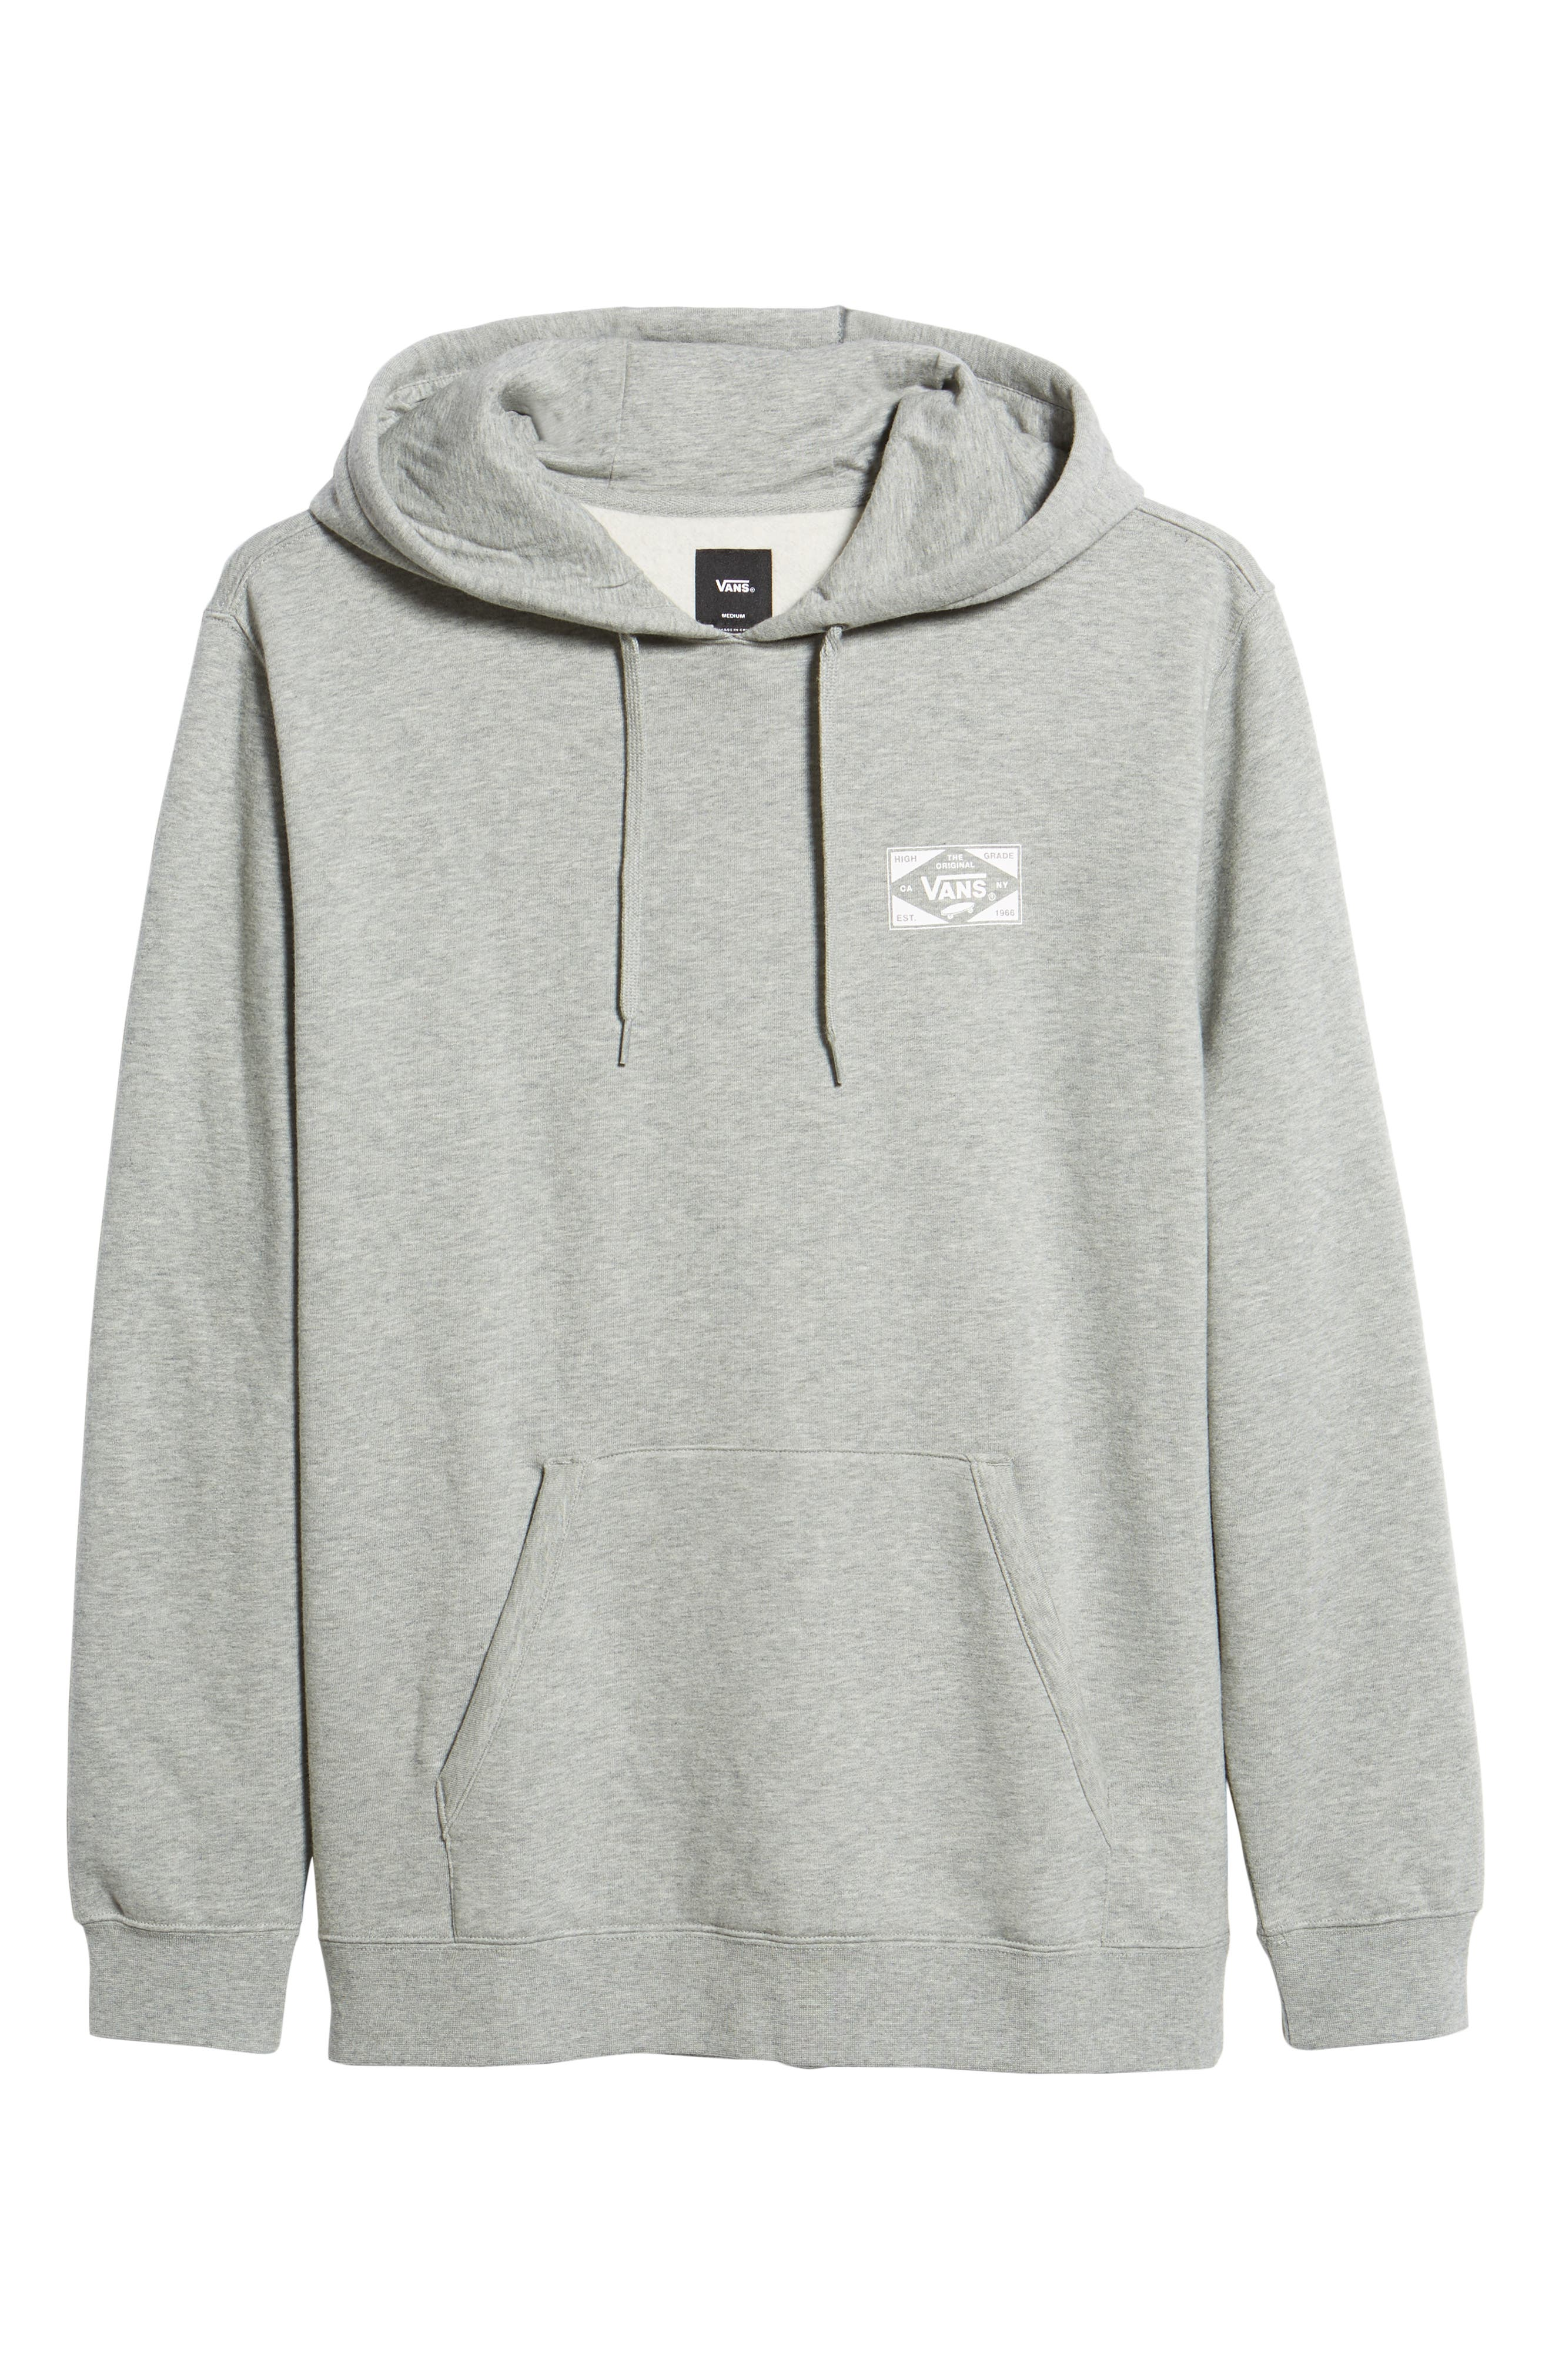 Best in Class Hooded Sweatshirt,                             Alternate thumbnail 6, color,                             CEMENT HEATHER